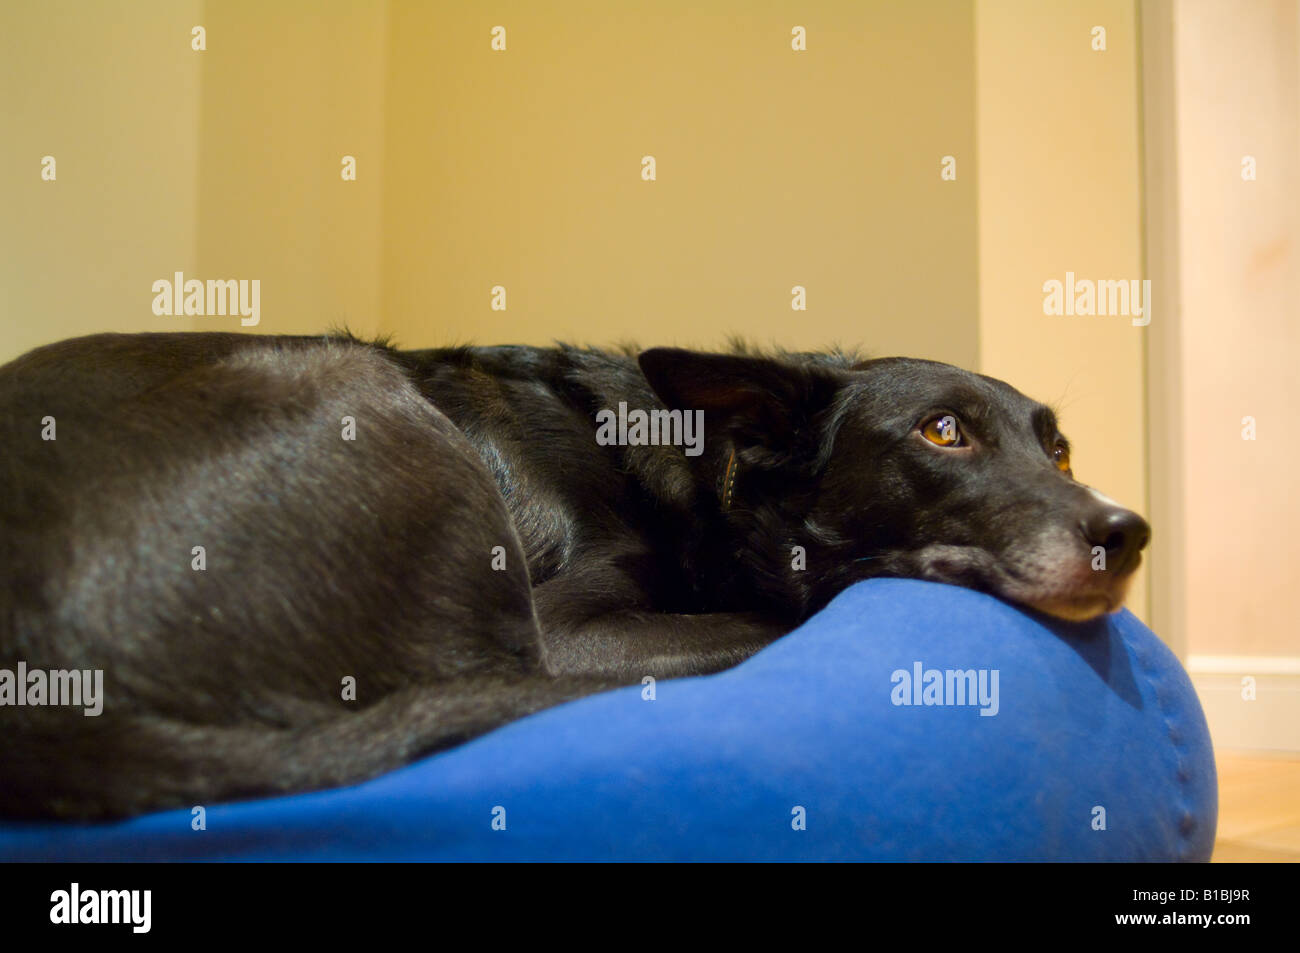 Dog resting on a bean bag - Stock Image